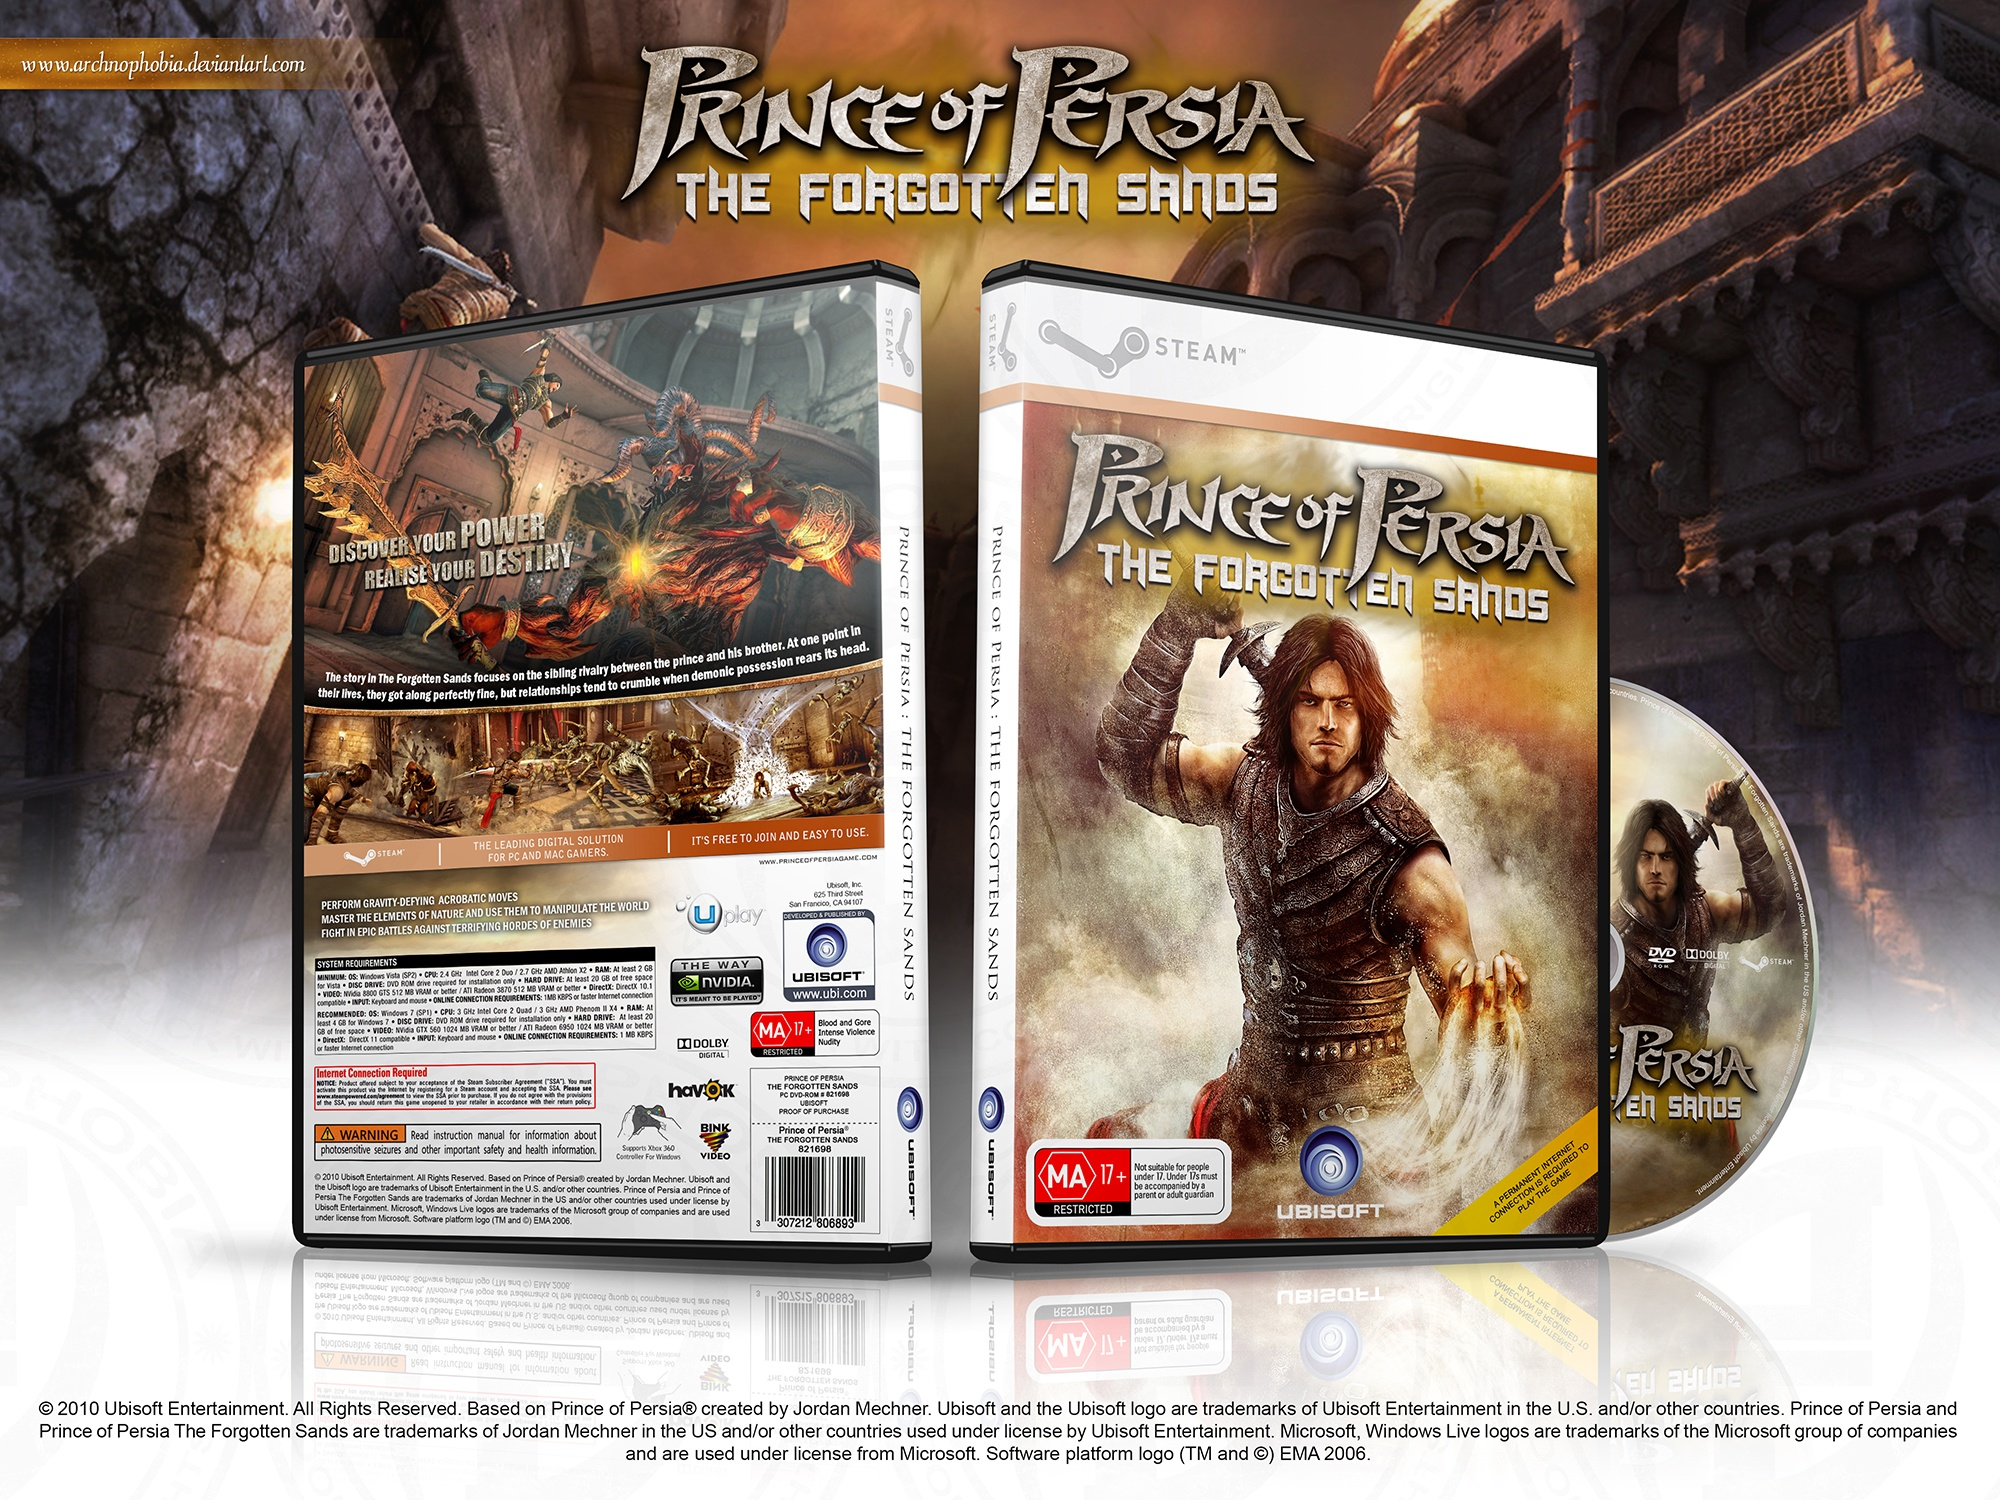 Prince of Persia: The Forgotten Sands box cover